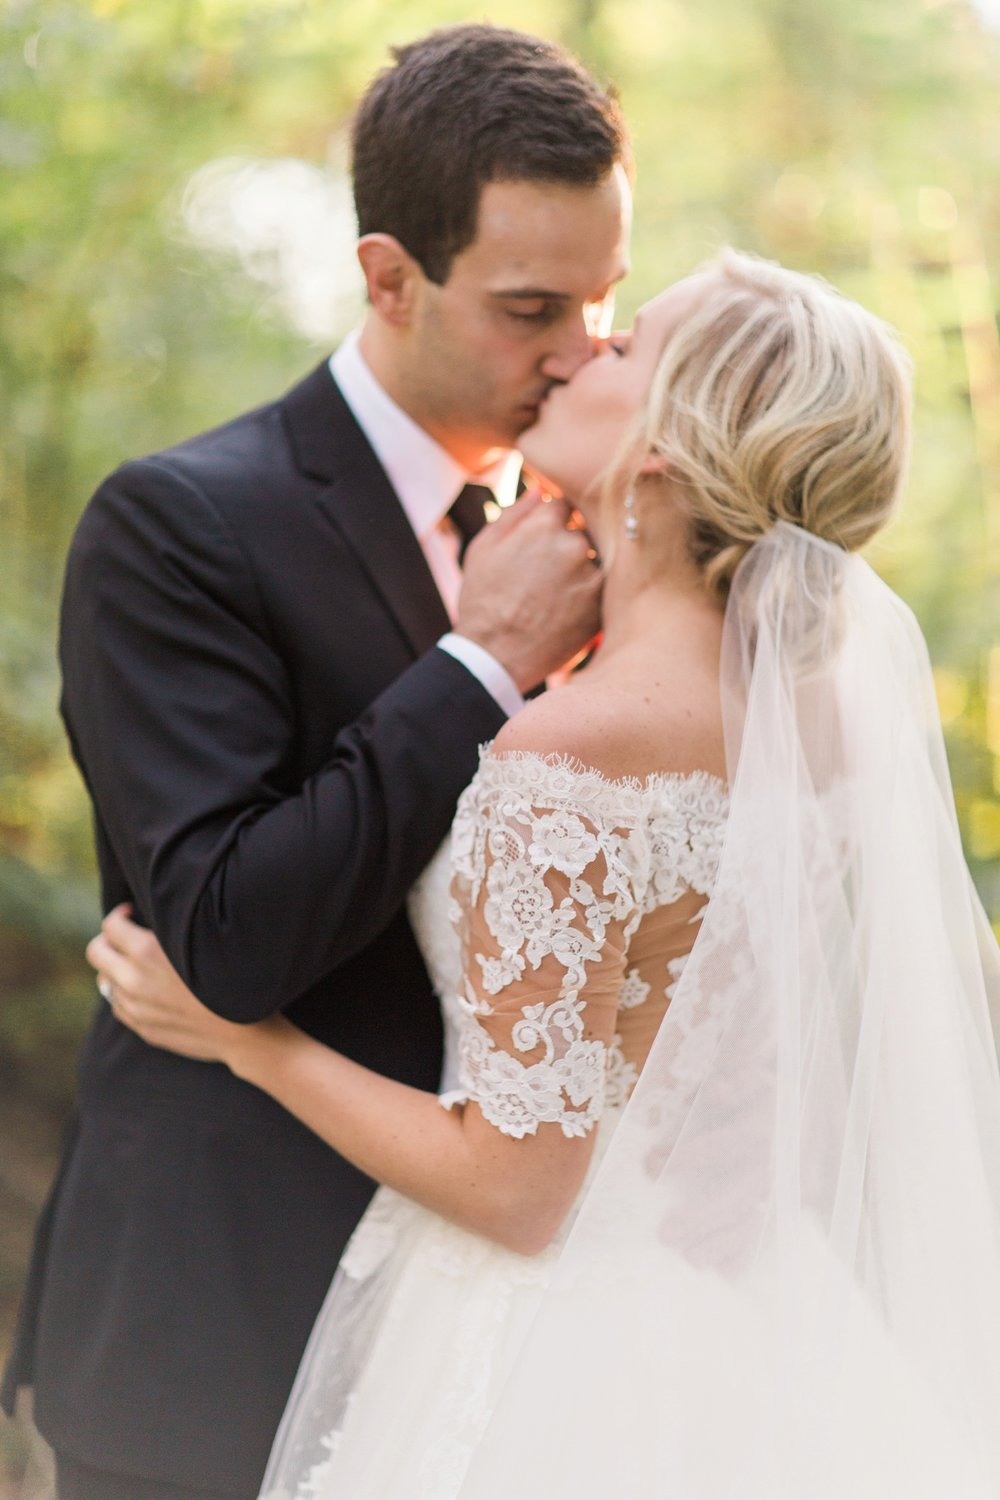 Joe-Katie-Stylish-Elegant-Blush-Gold-Fall-Indiana-Film-Wedding-Photographer_8108.jpg